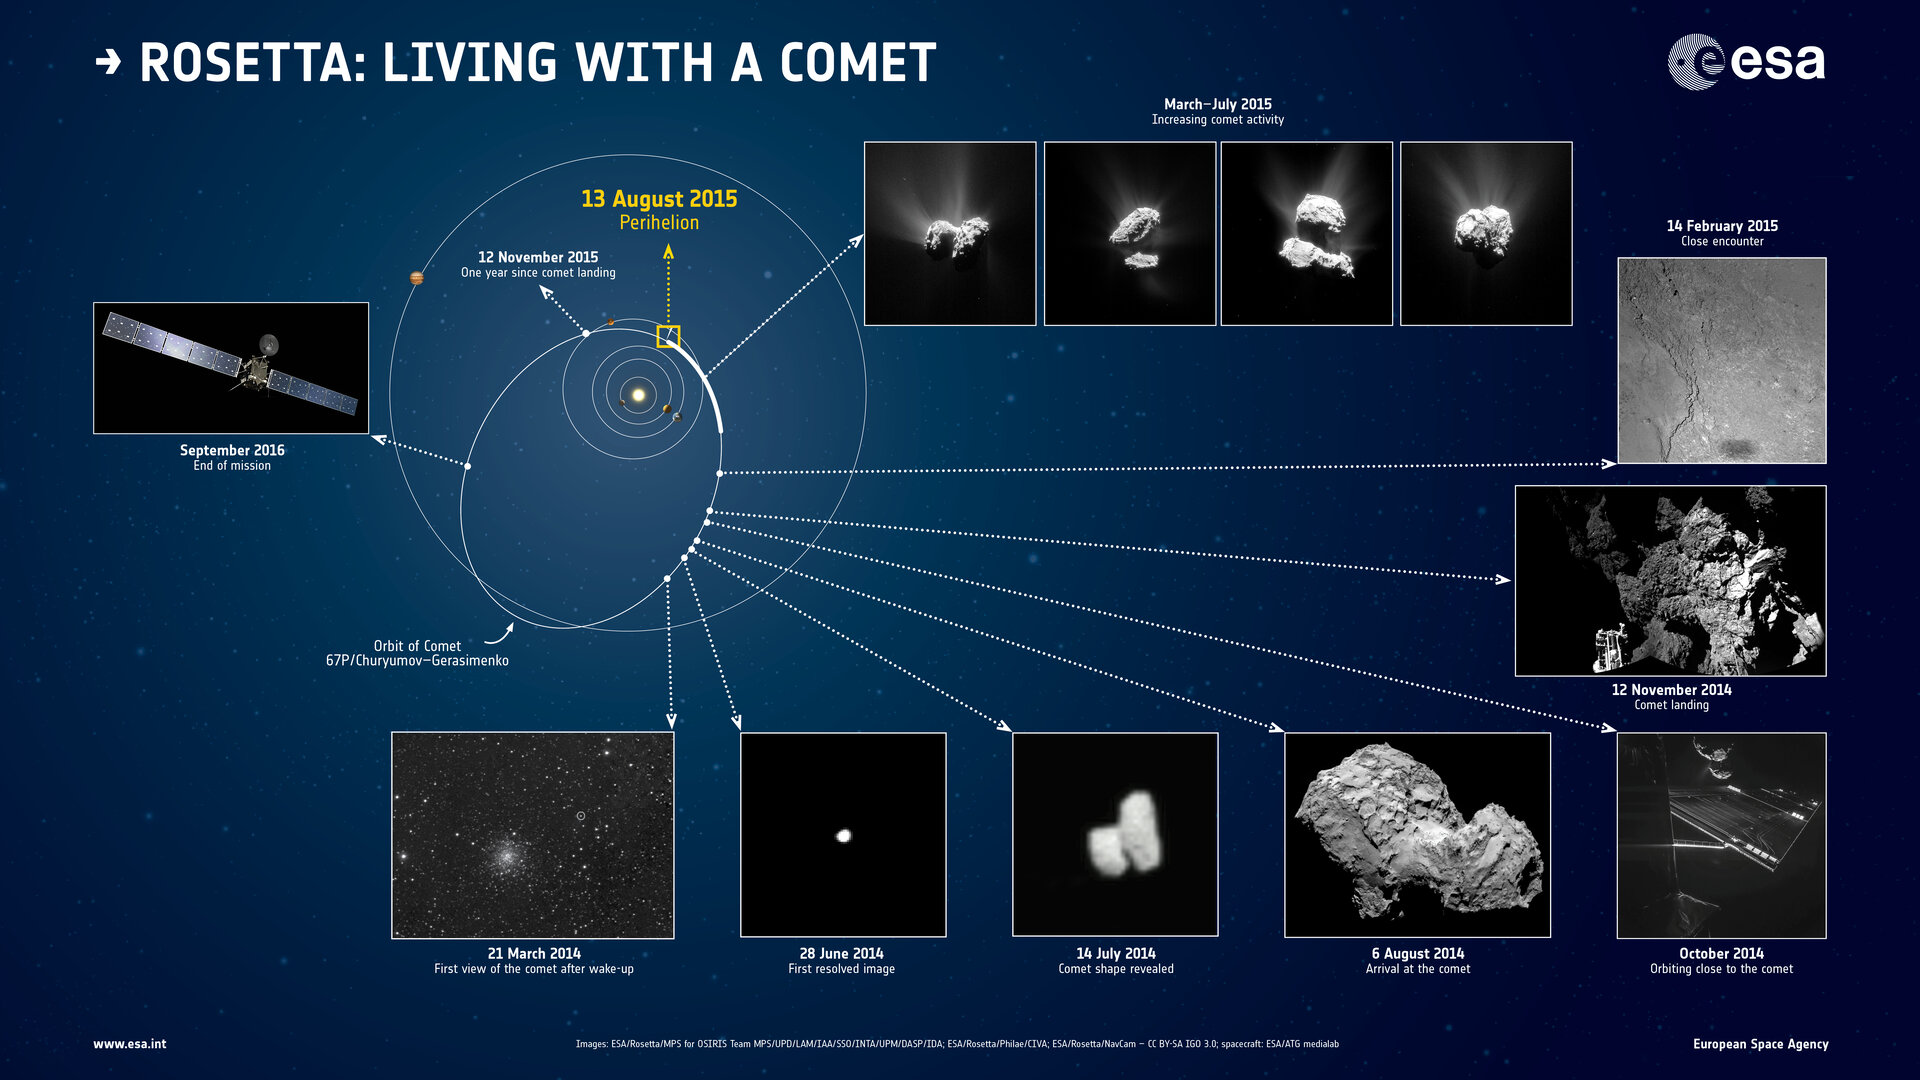 Living with a comet